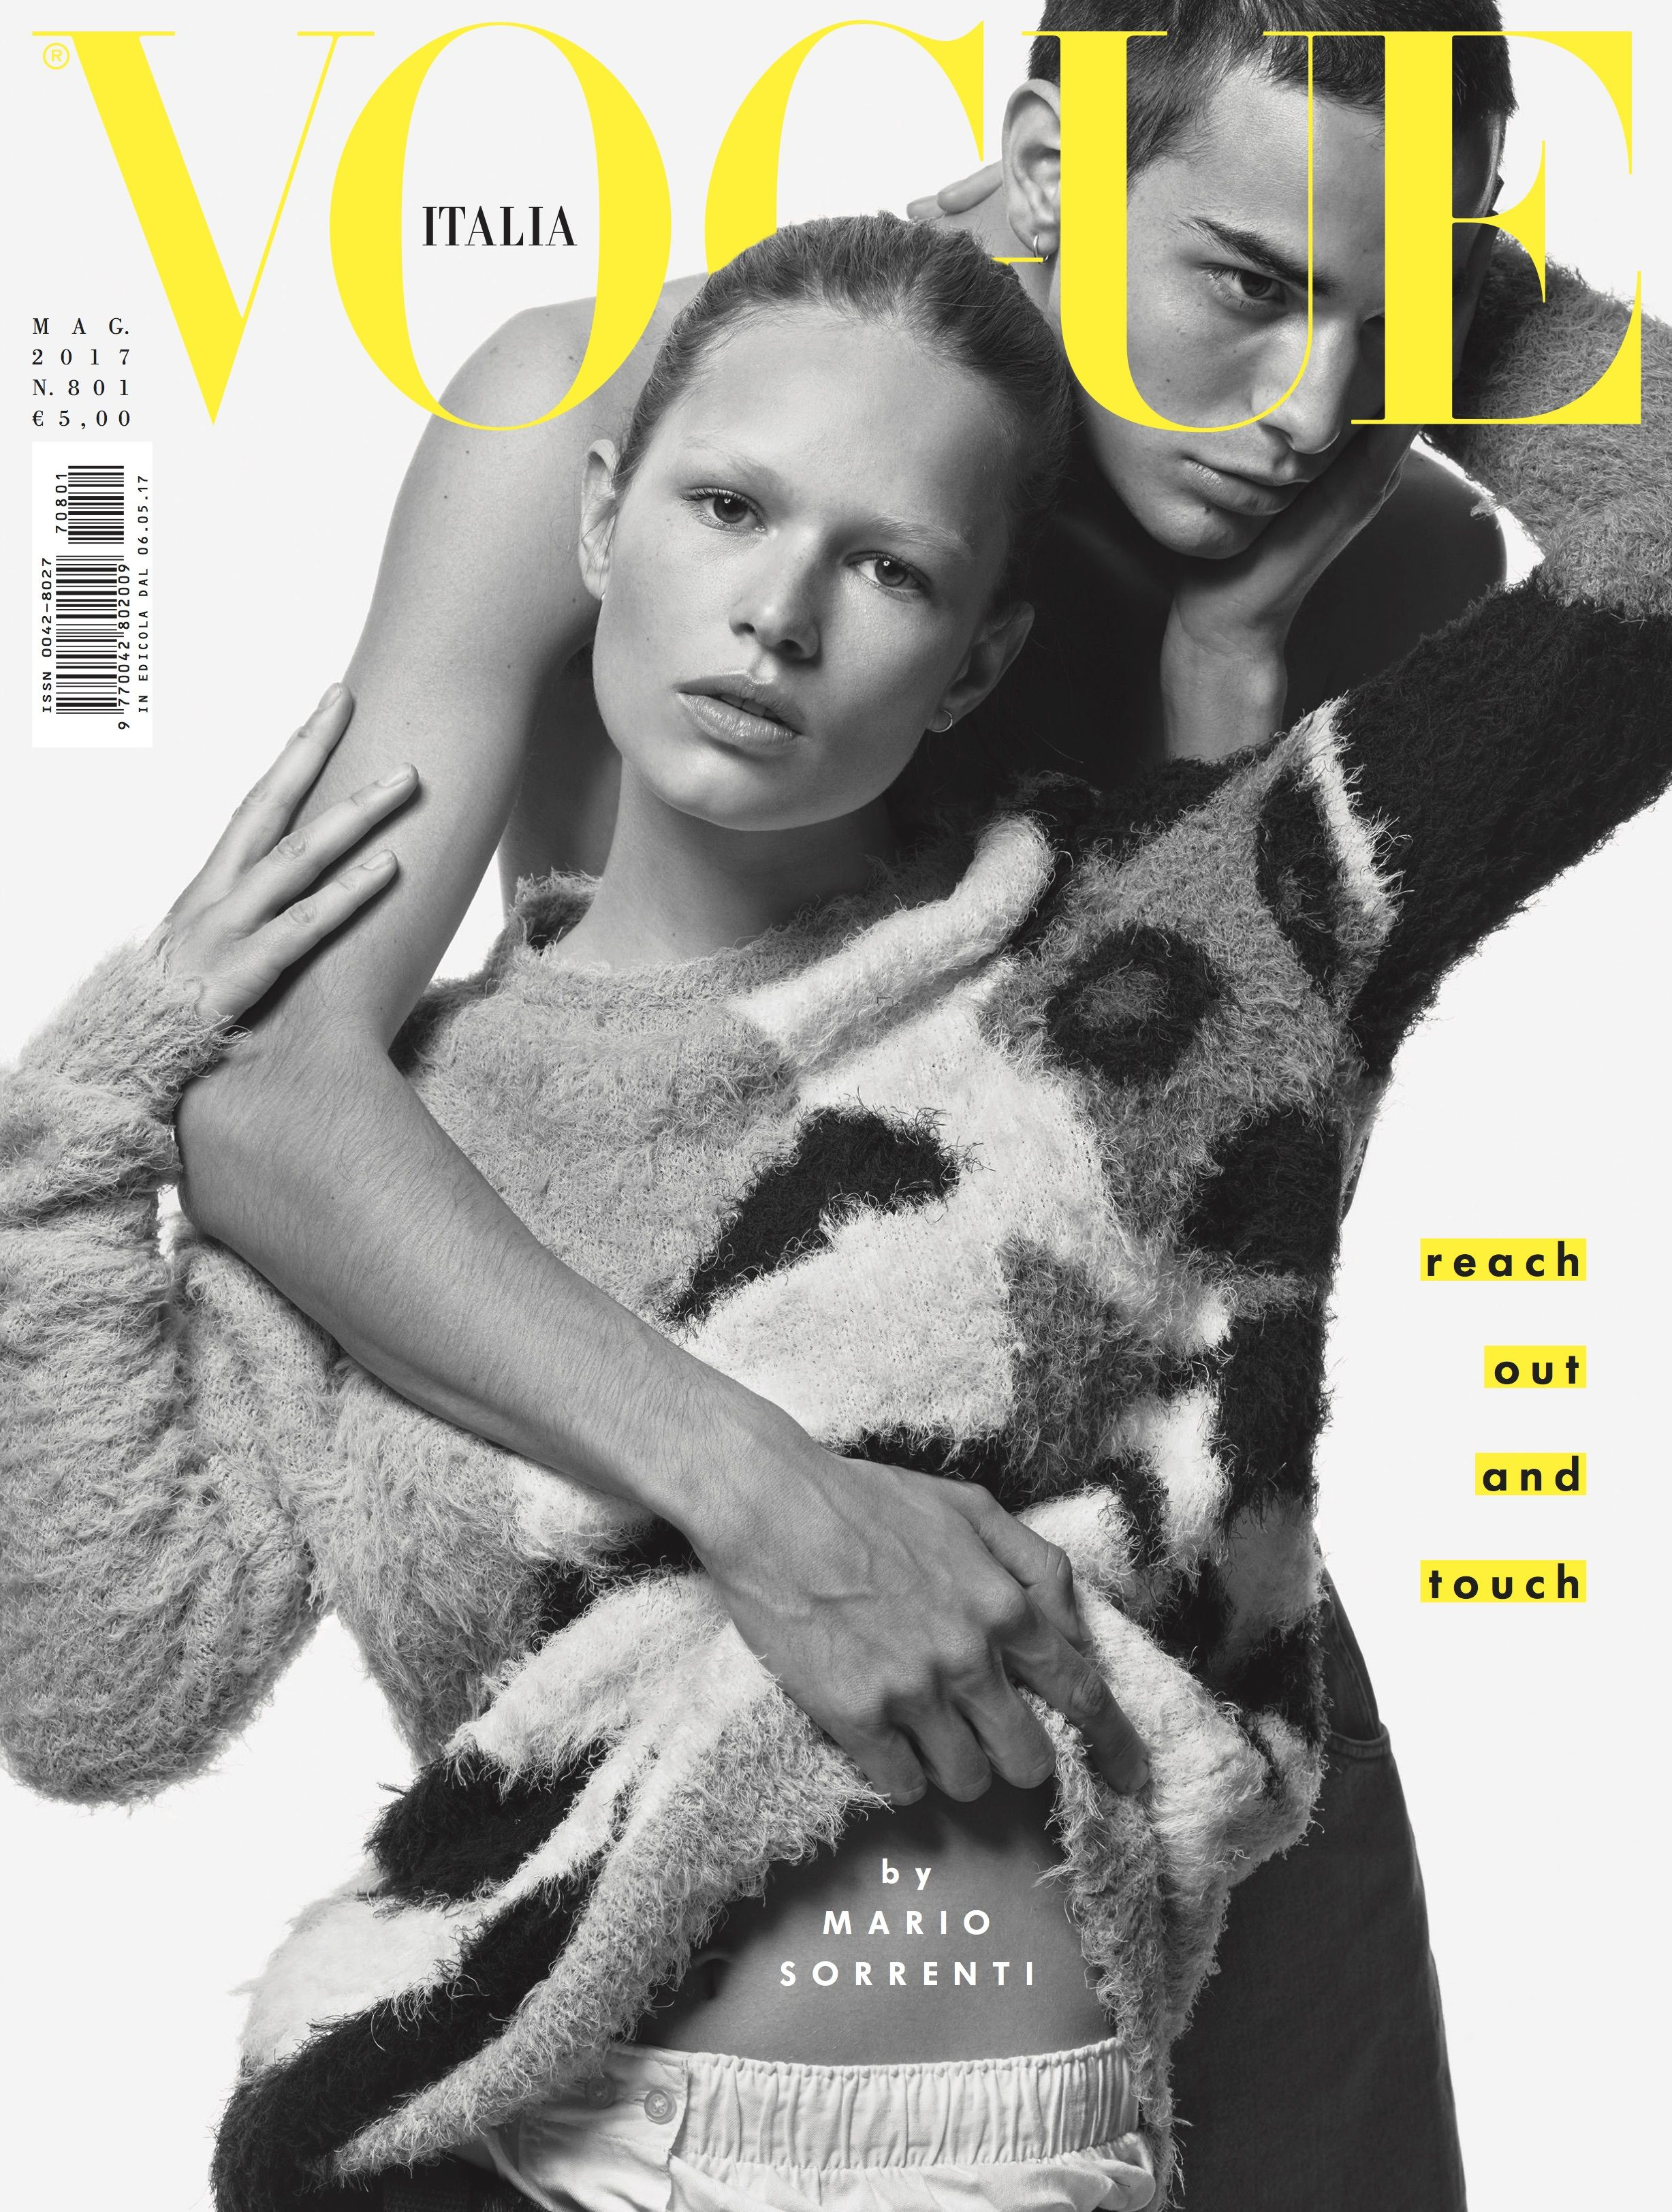 Anna ewers vogue magazine italy april 2019 nudes (62 photo), Ass Celebrites pictures